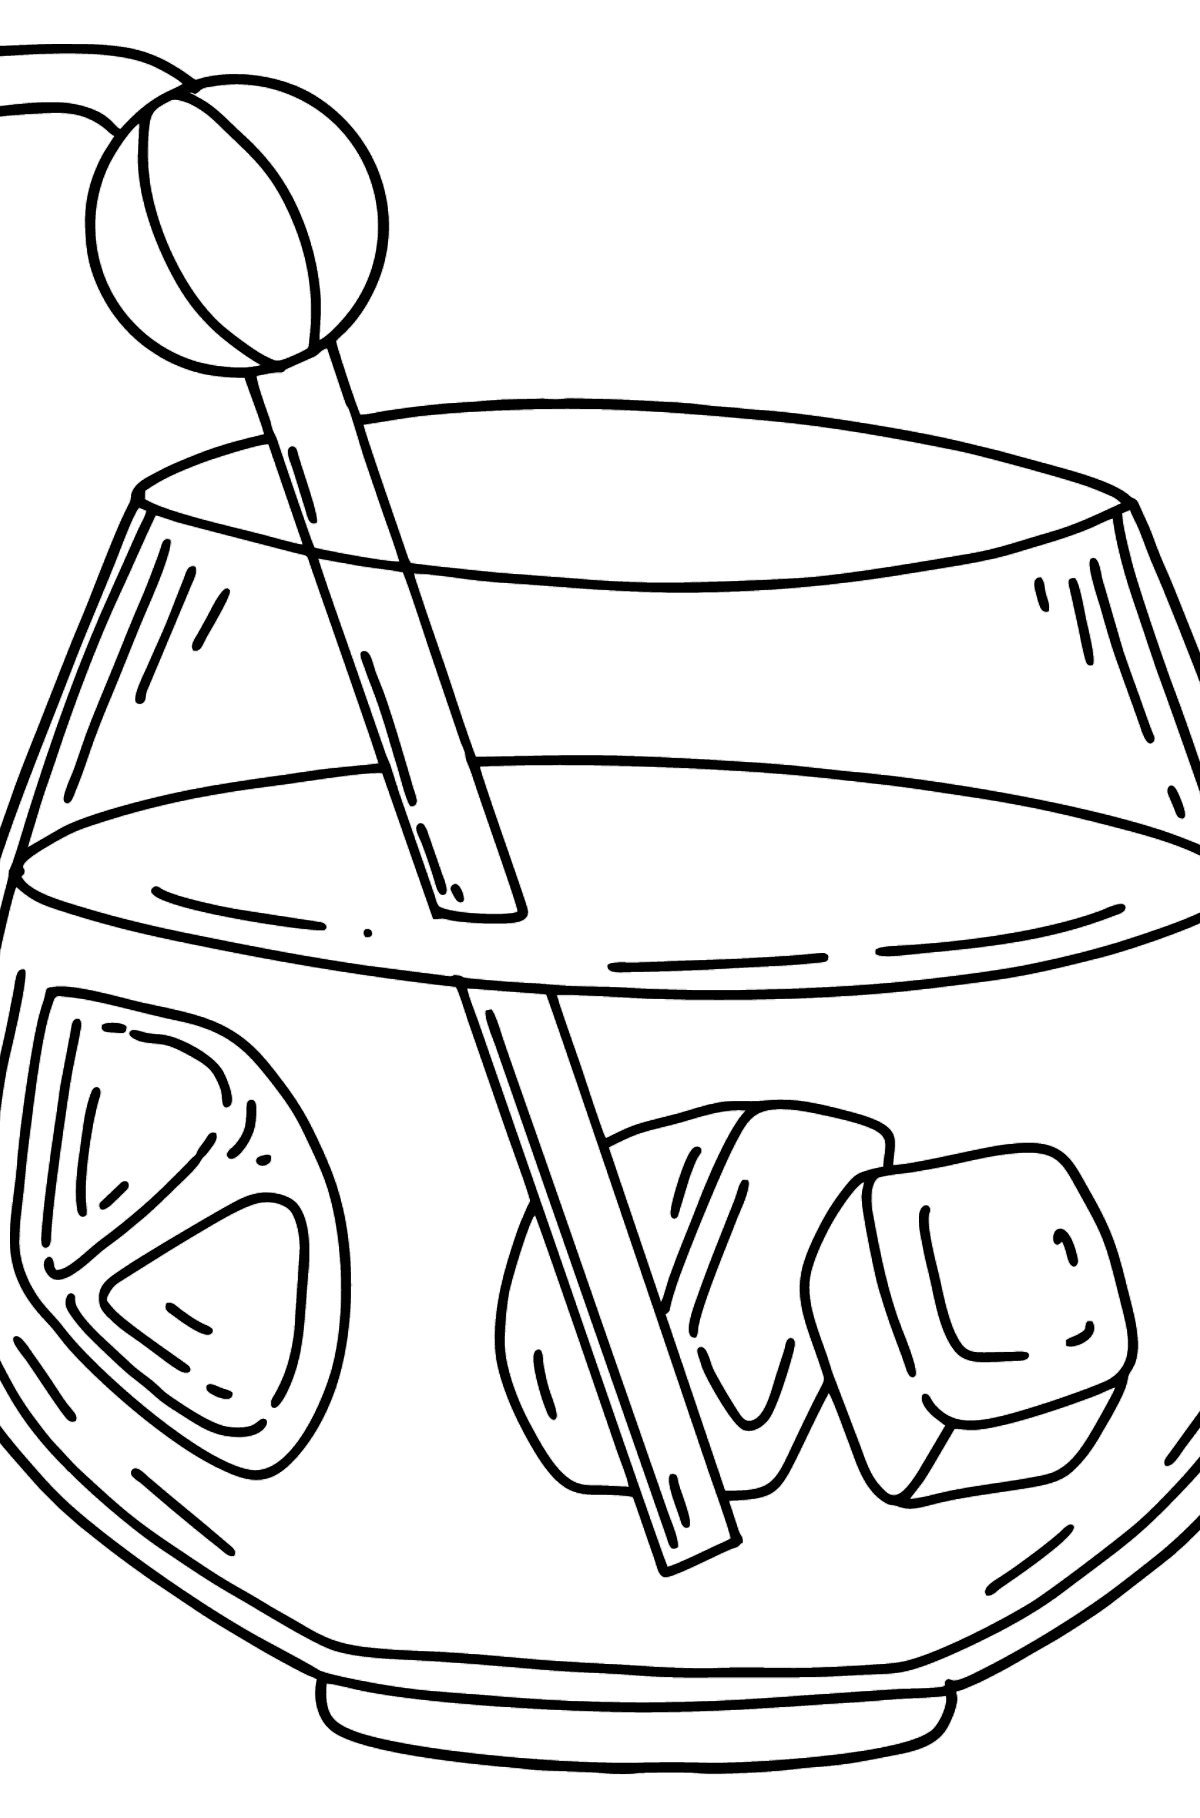 Fresh Juice coloring page - Coloring Pages for Kids